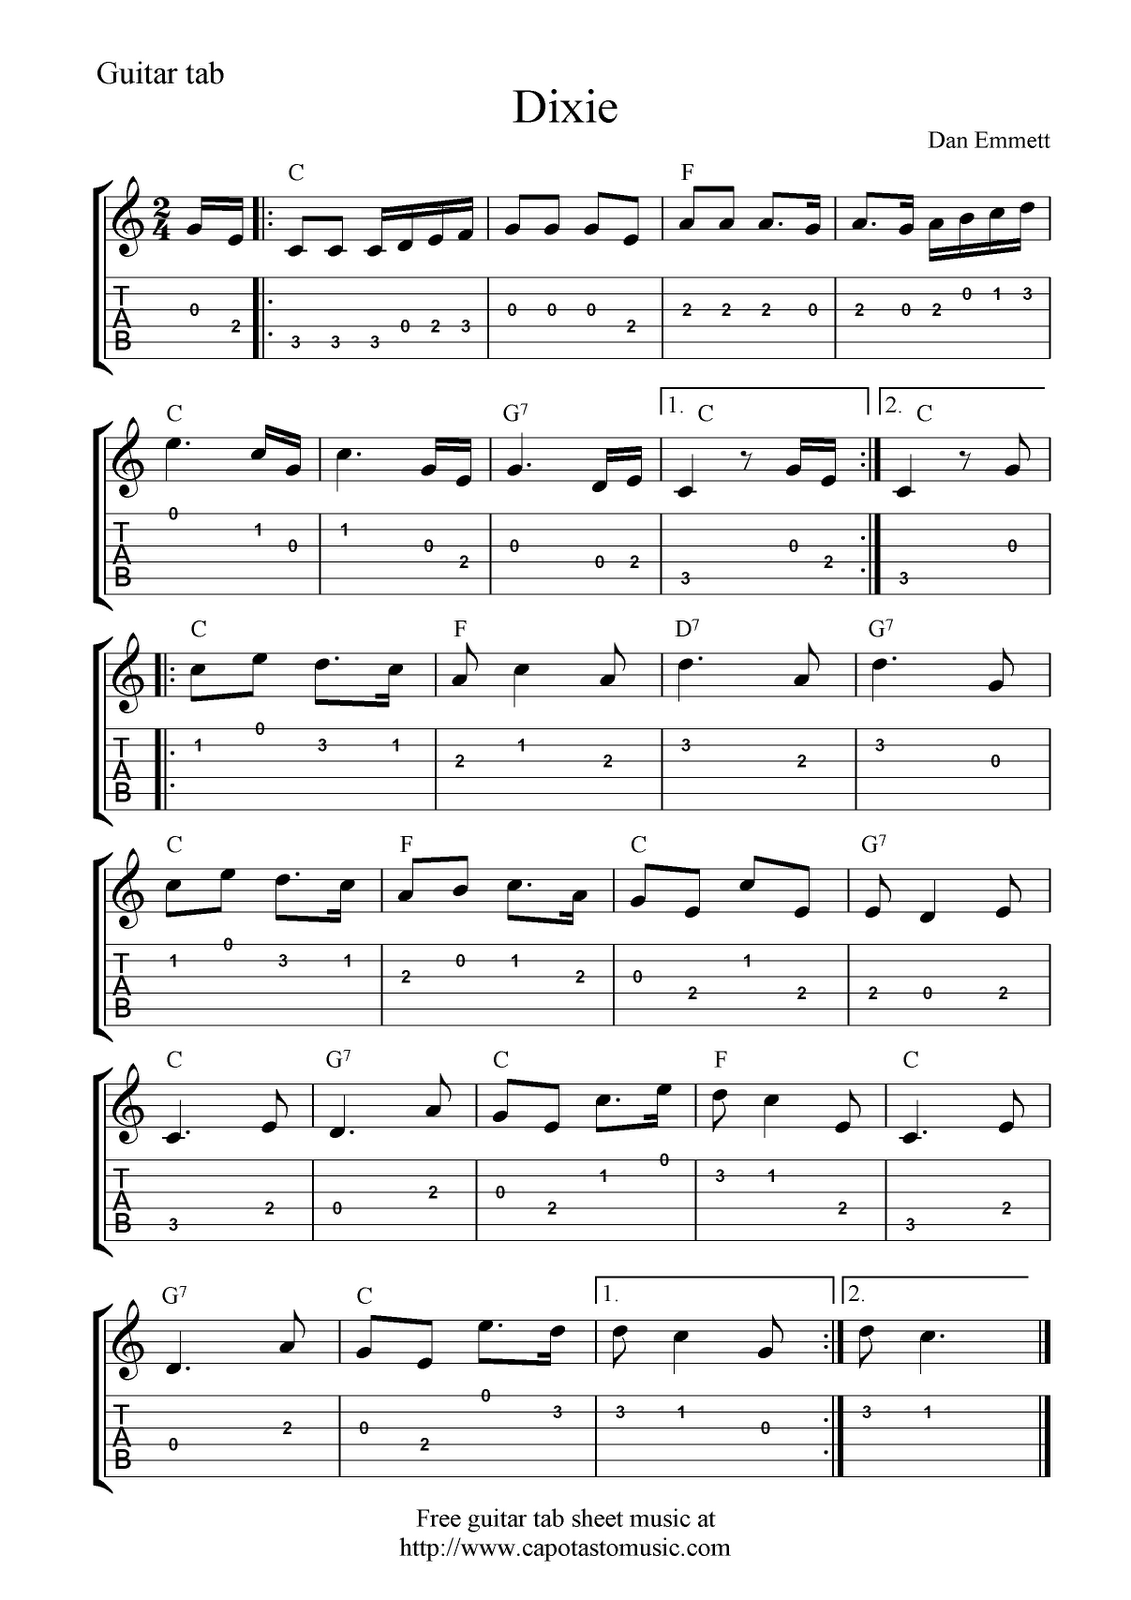 It's just a photo of Fabulous Free Guitar Sheet Music for Popular Songs Printable